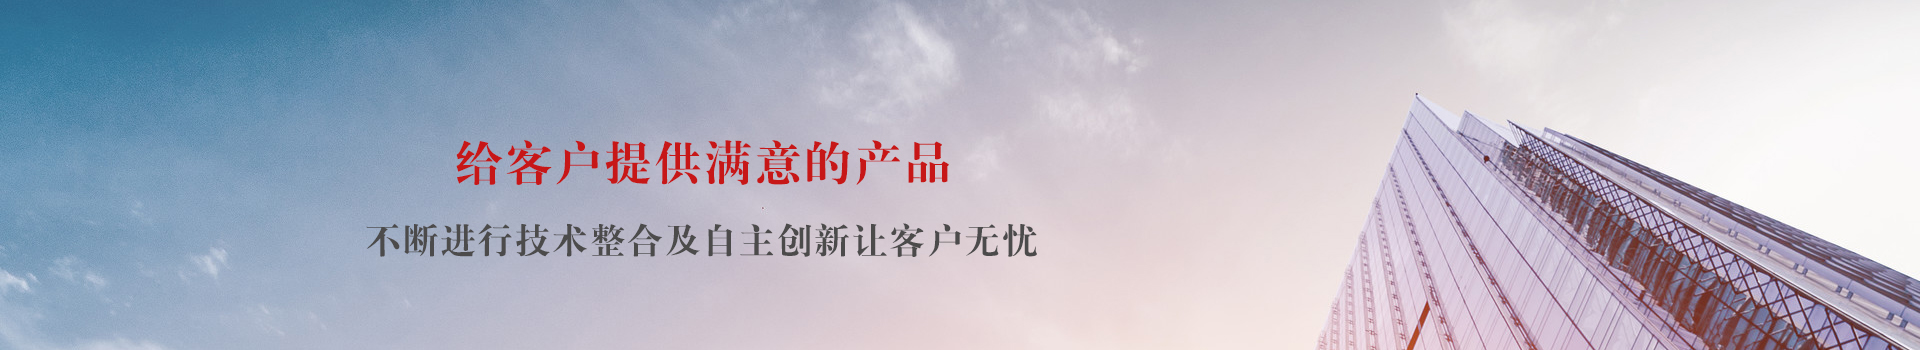 http://www.ychenghe.com/data/upload/202005/20200512094333_851.jpg